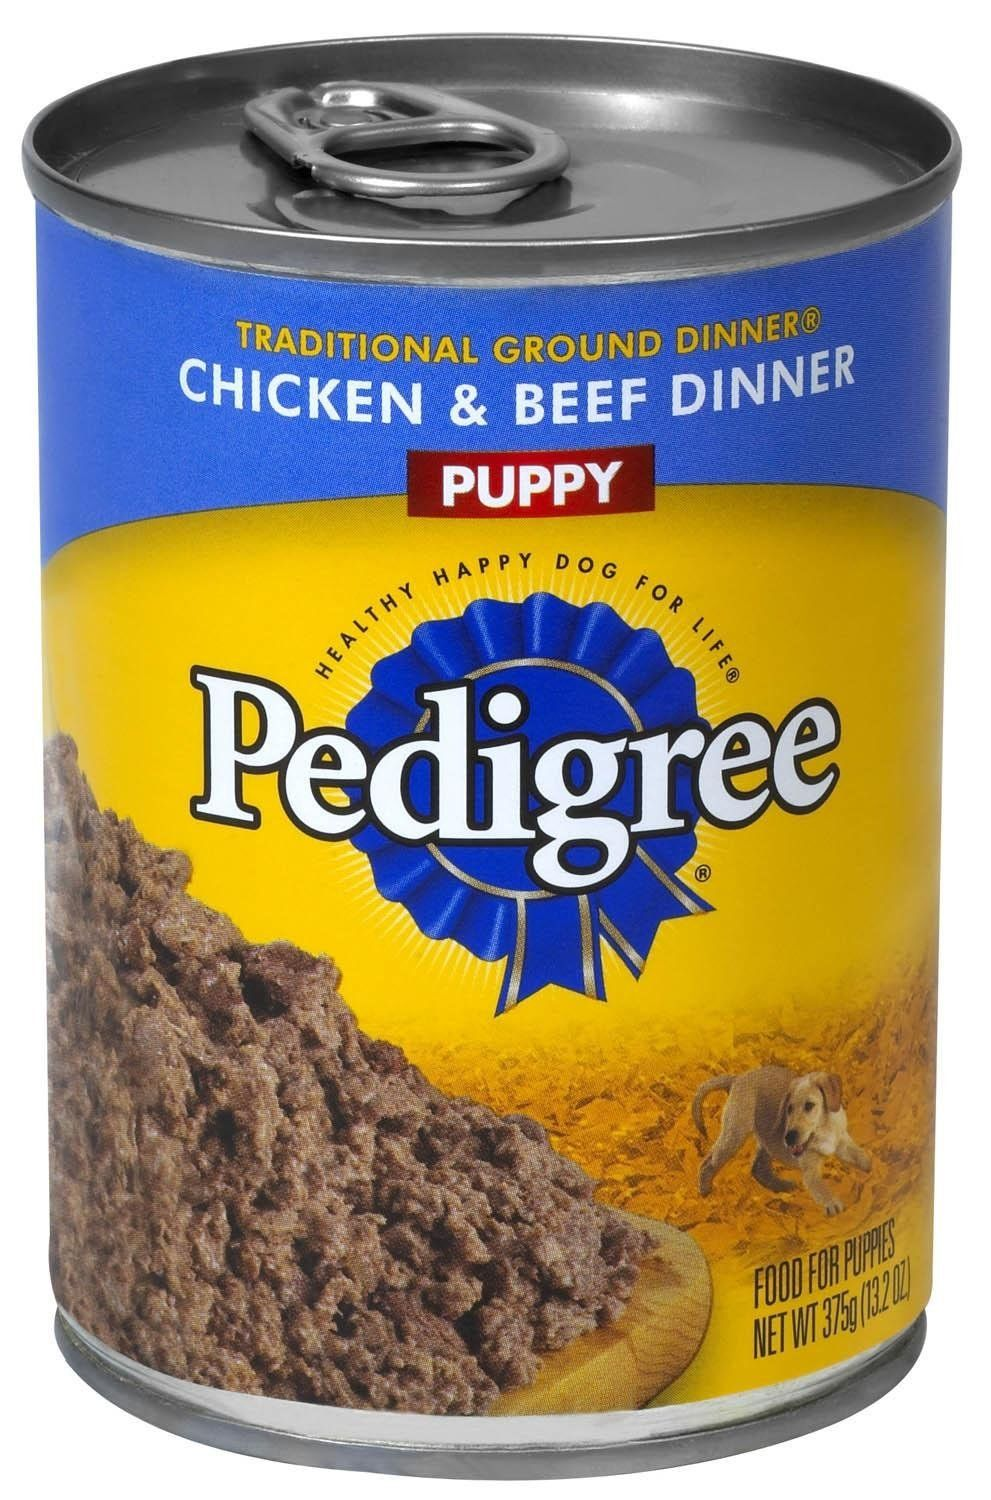 Pedigree brand canned dog food for puppies click image